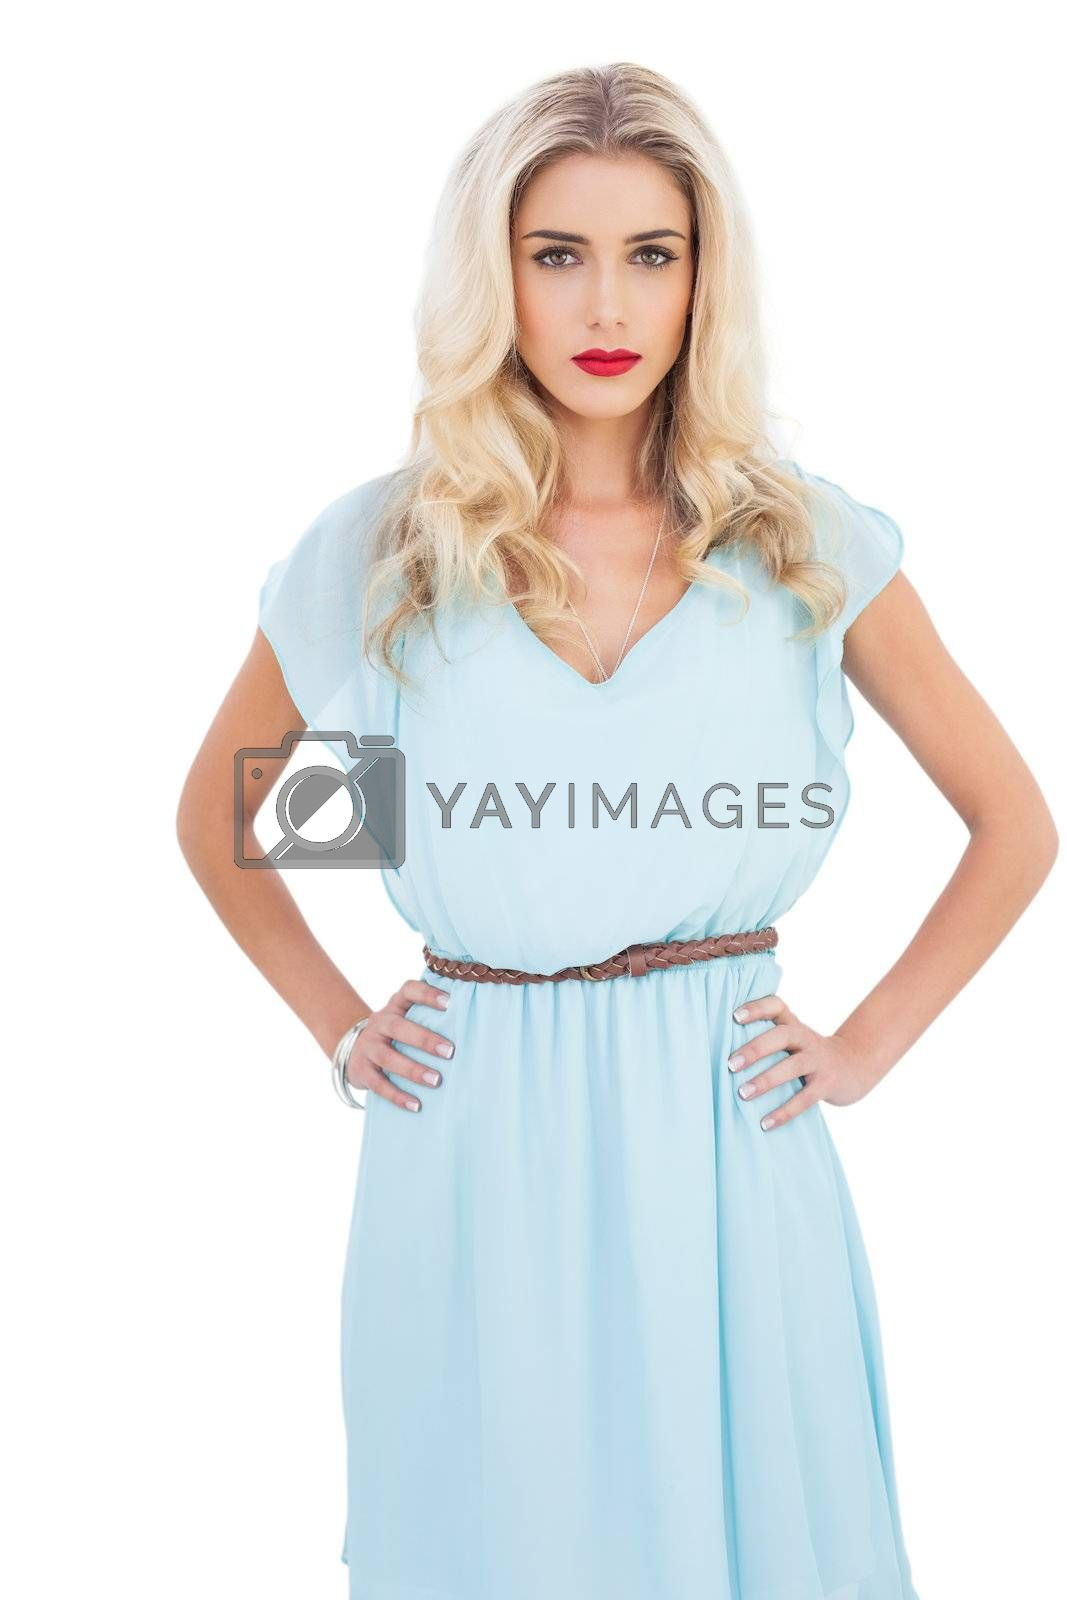 Contemplative blonde model in blue dress posing hands on the hips by Wavebreakmedia